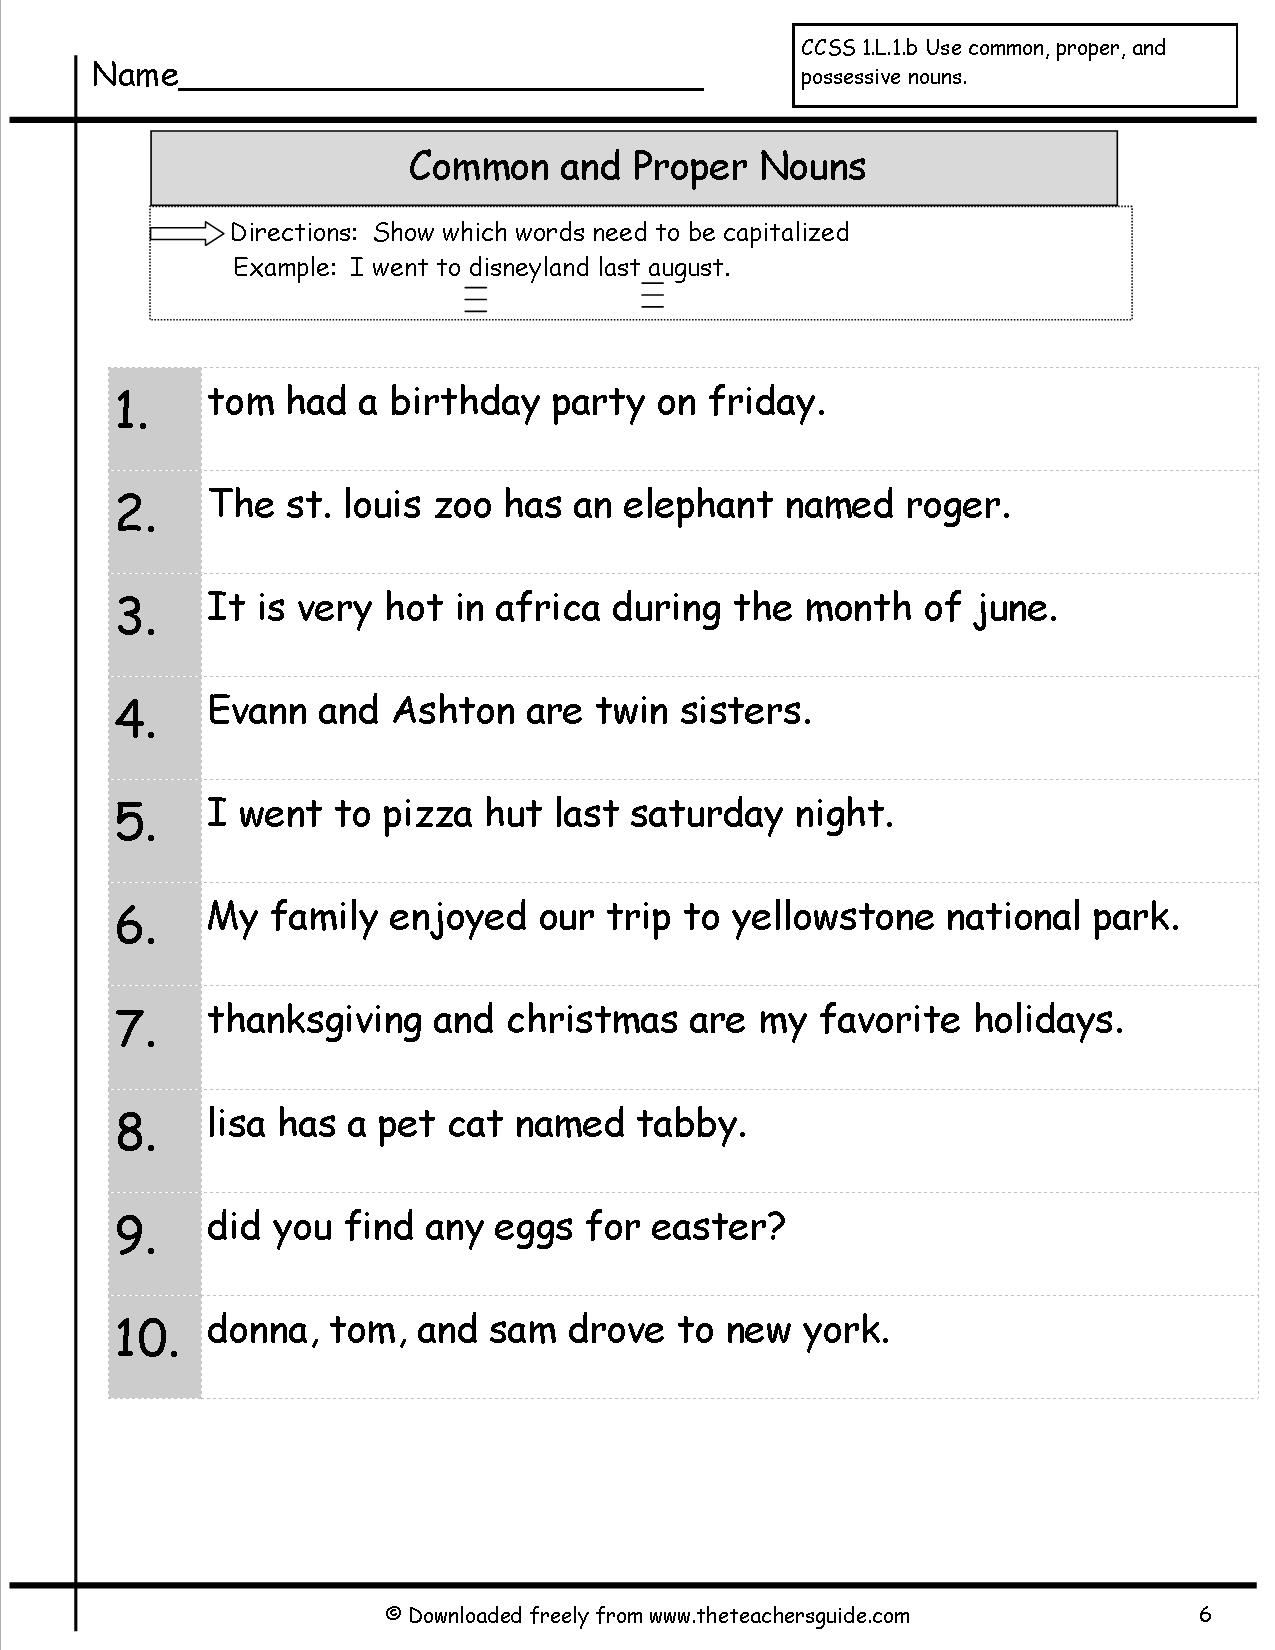 Www Theteachersguide Com With Images Nouns Worksheet Common